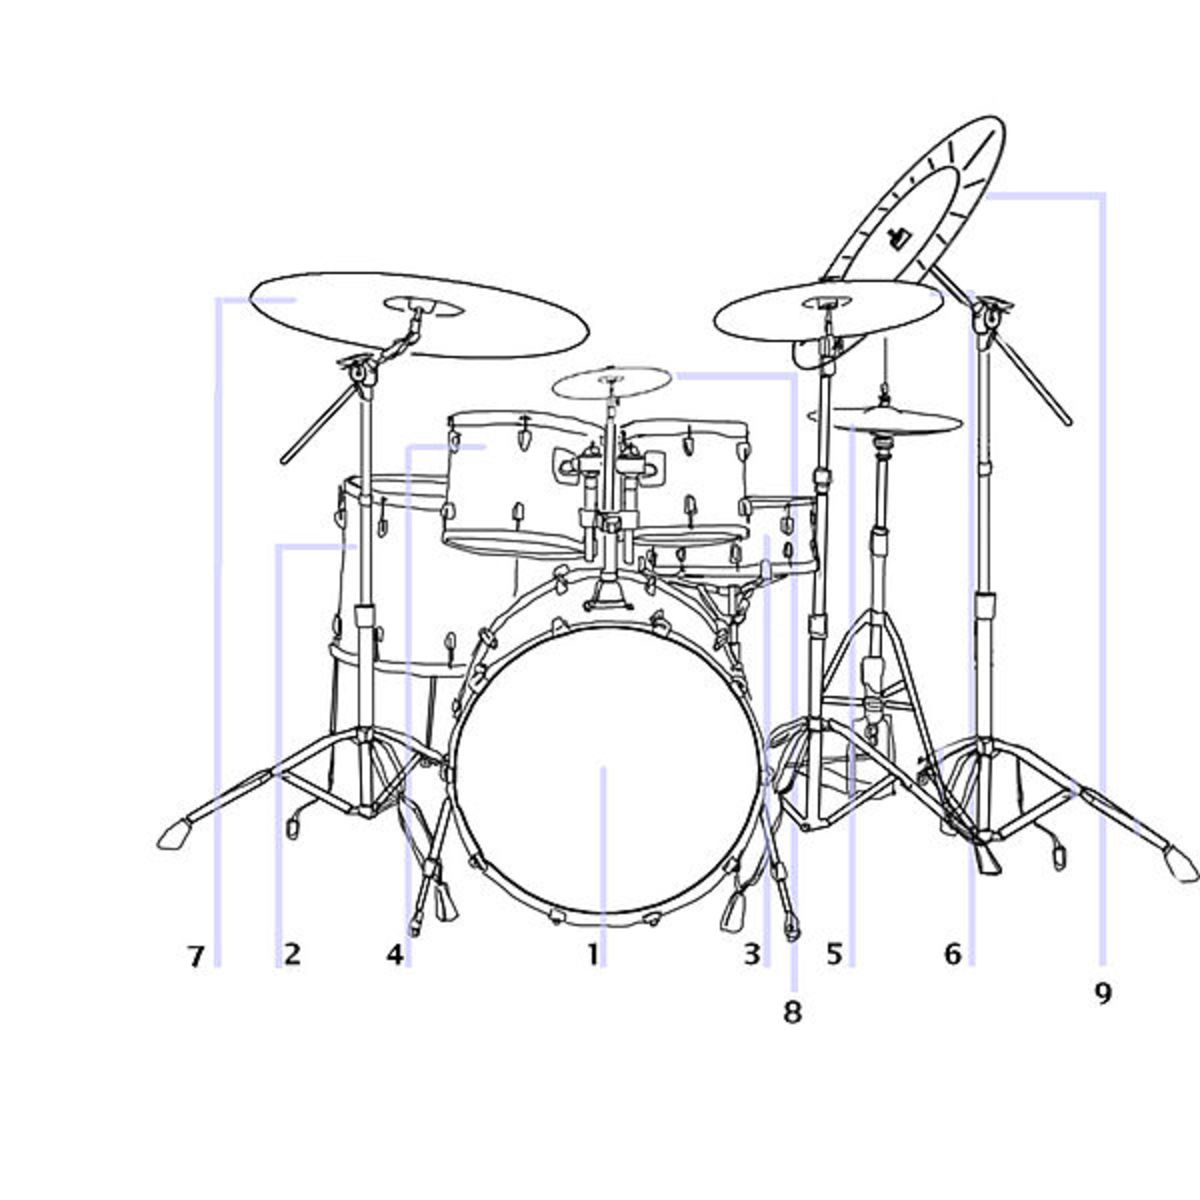 This is a basic kit. I will use this diagram to appropriately outline the drums.